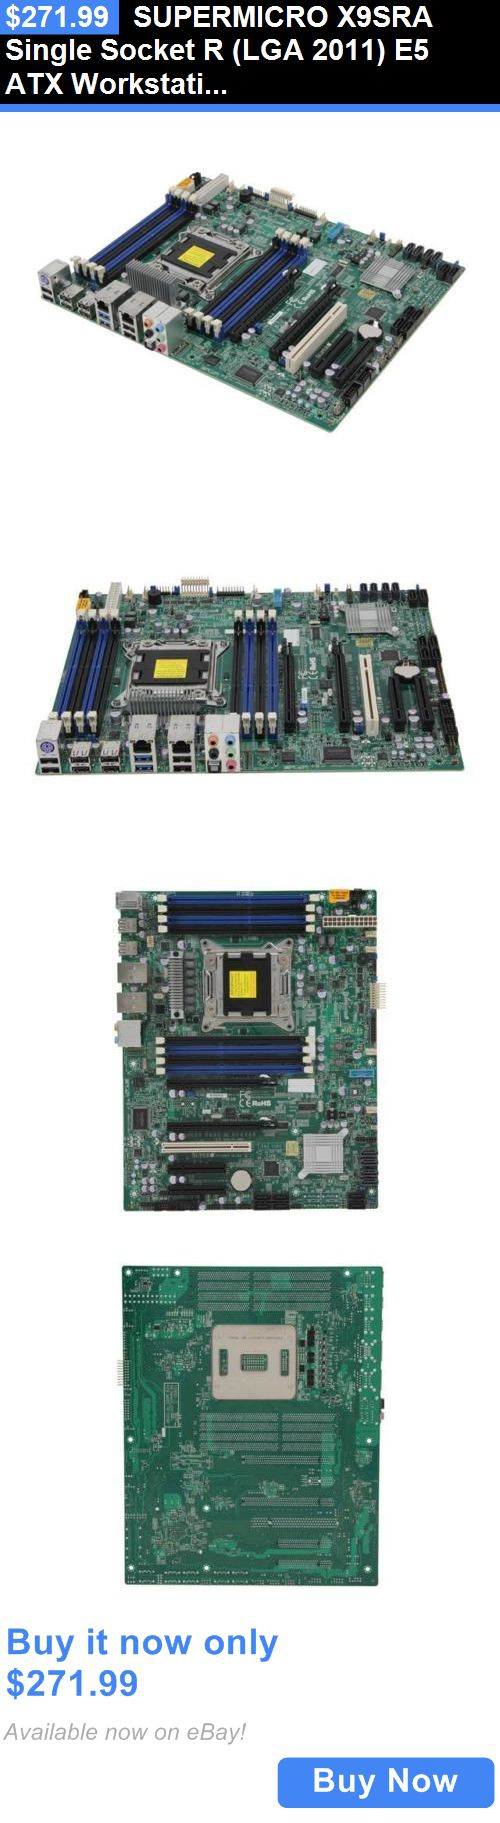 computer parts: Supermicro X9sra Single Socket R (Lga 2011) E5 Atx Workstation/Server Motherboar BUY IT NOW ONLY: $271.99